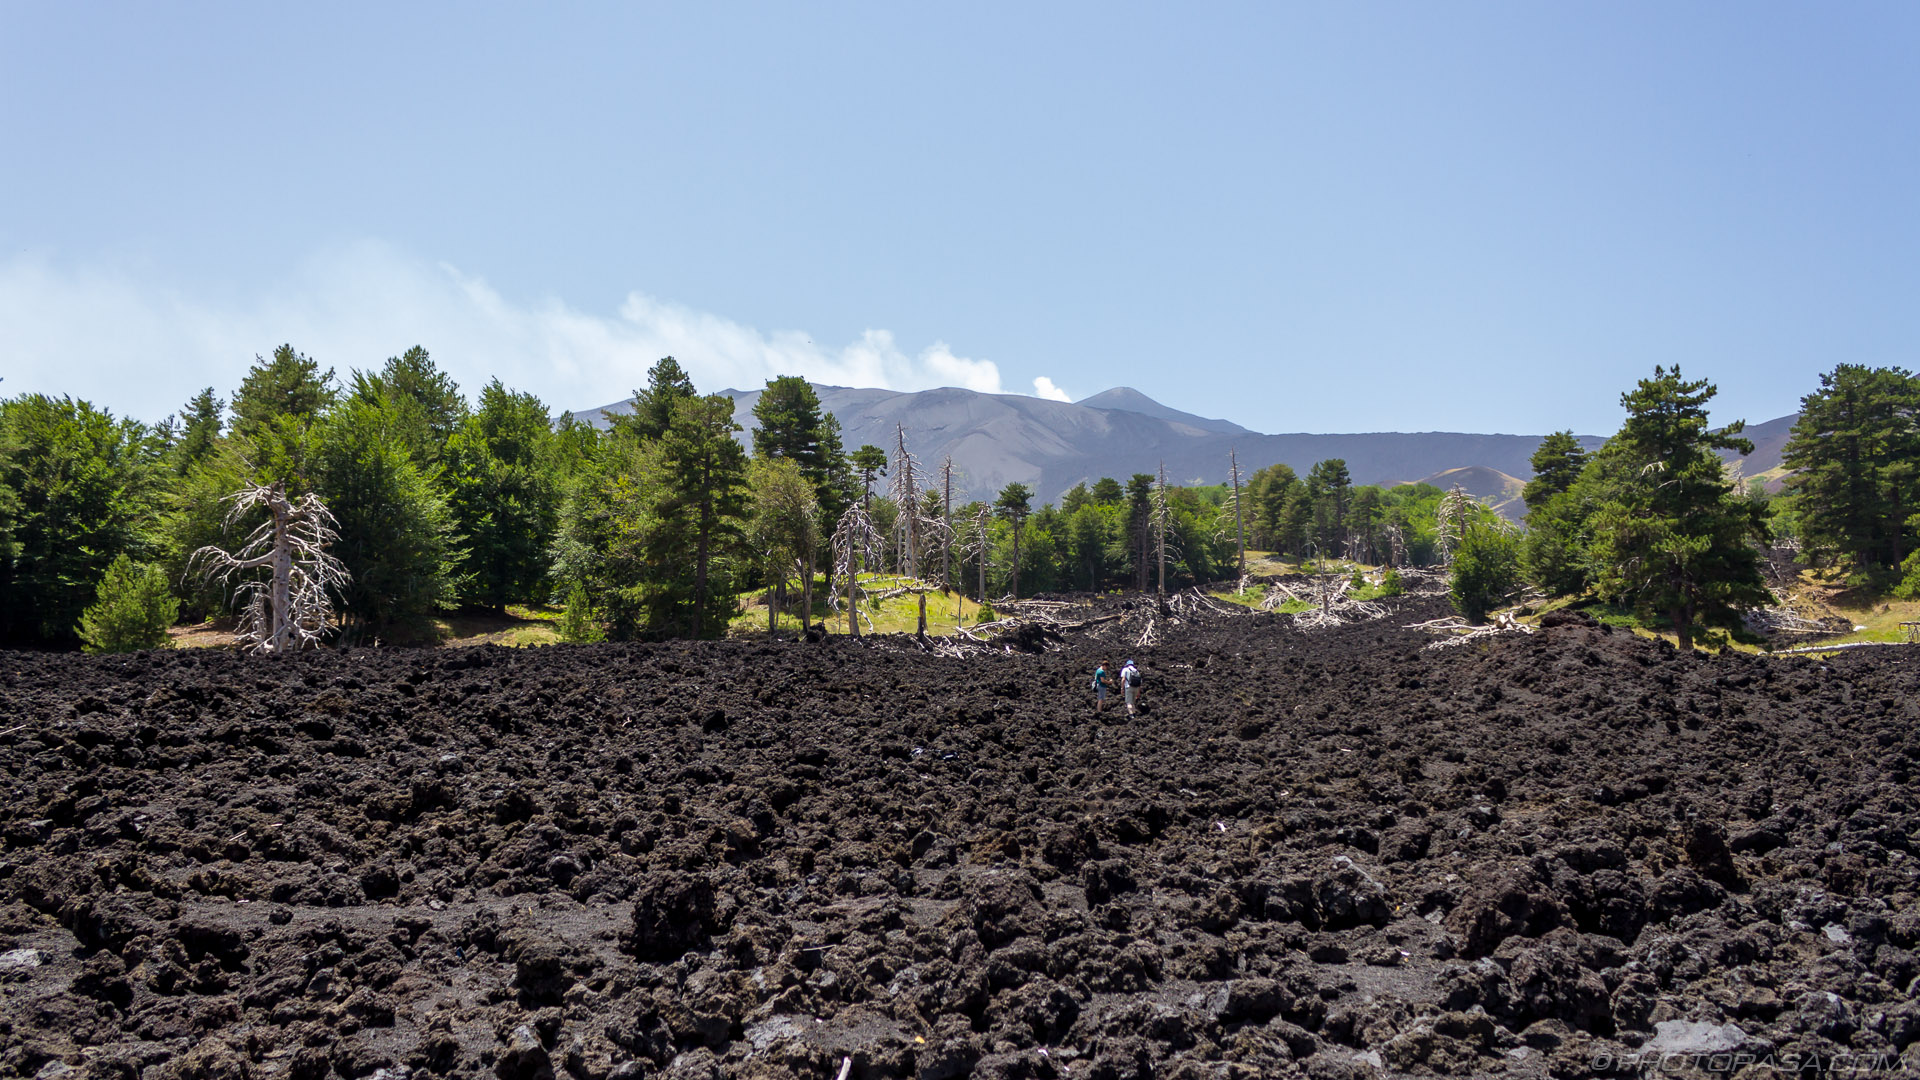 https://photorasa.com/mount-etna/sea-of-lava-rock/